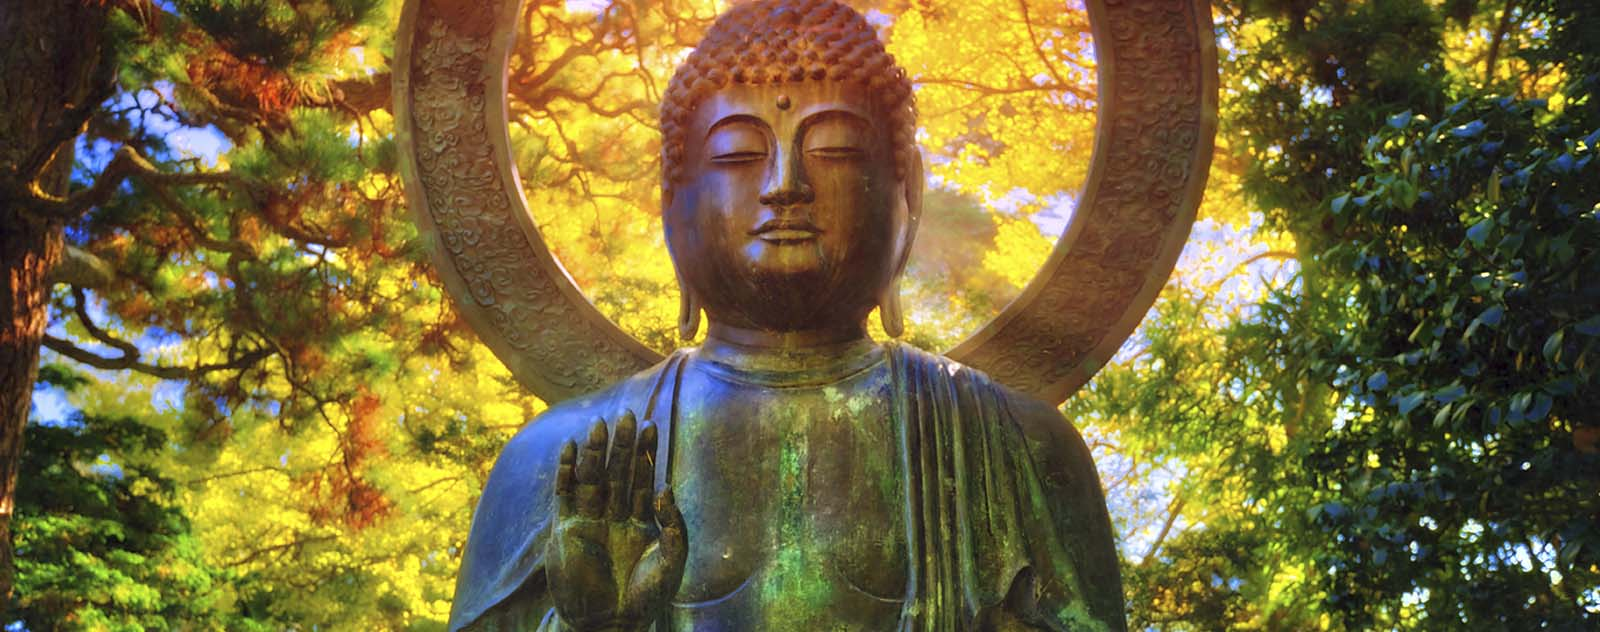 Positions et postures du Bouddha : Signification